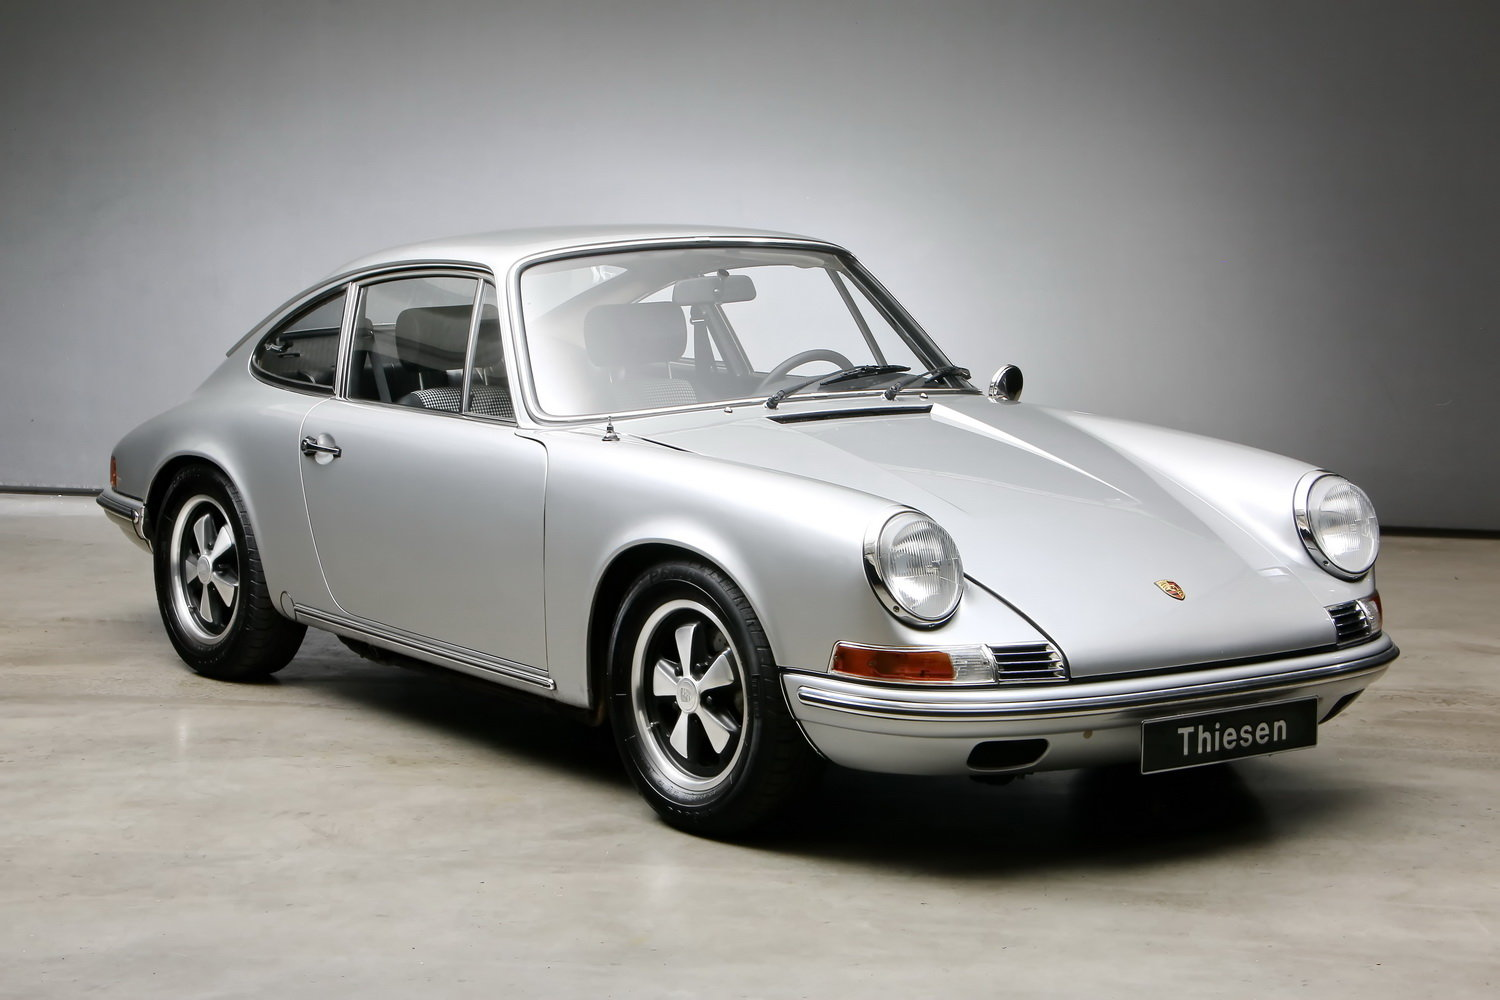 1970 911T 2.2 Ltr. Coup - Individualumbau - For Sale (picture 3 of 12)